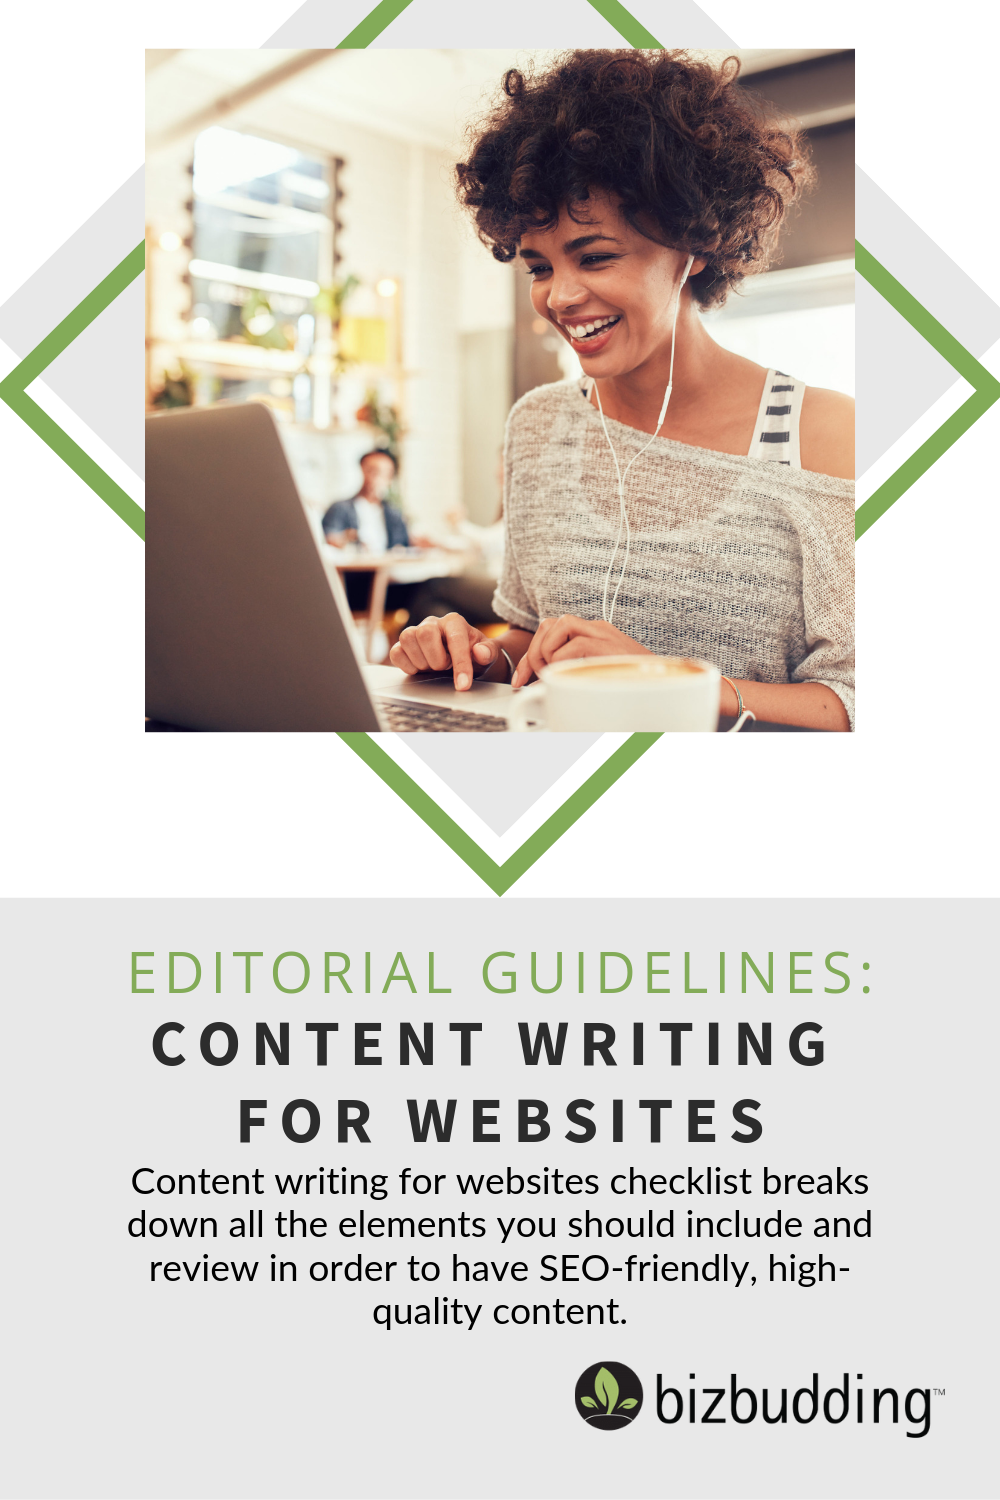 pinterest image for editorial-guidelines-content-writing-websites